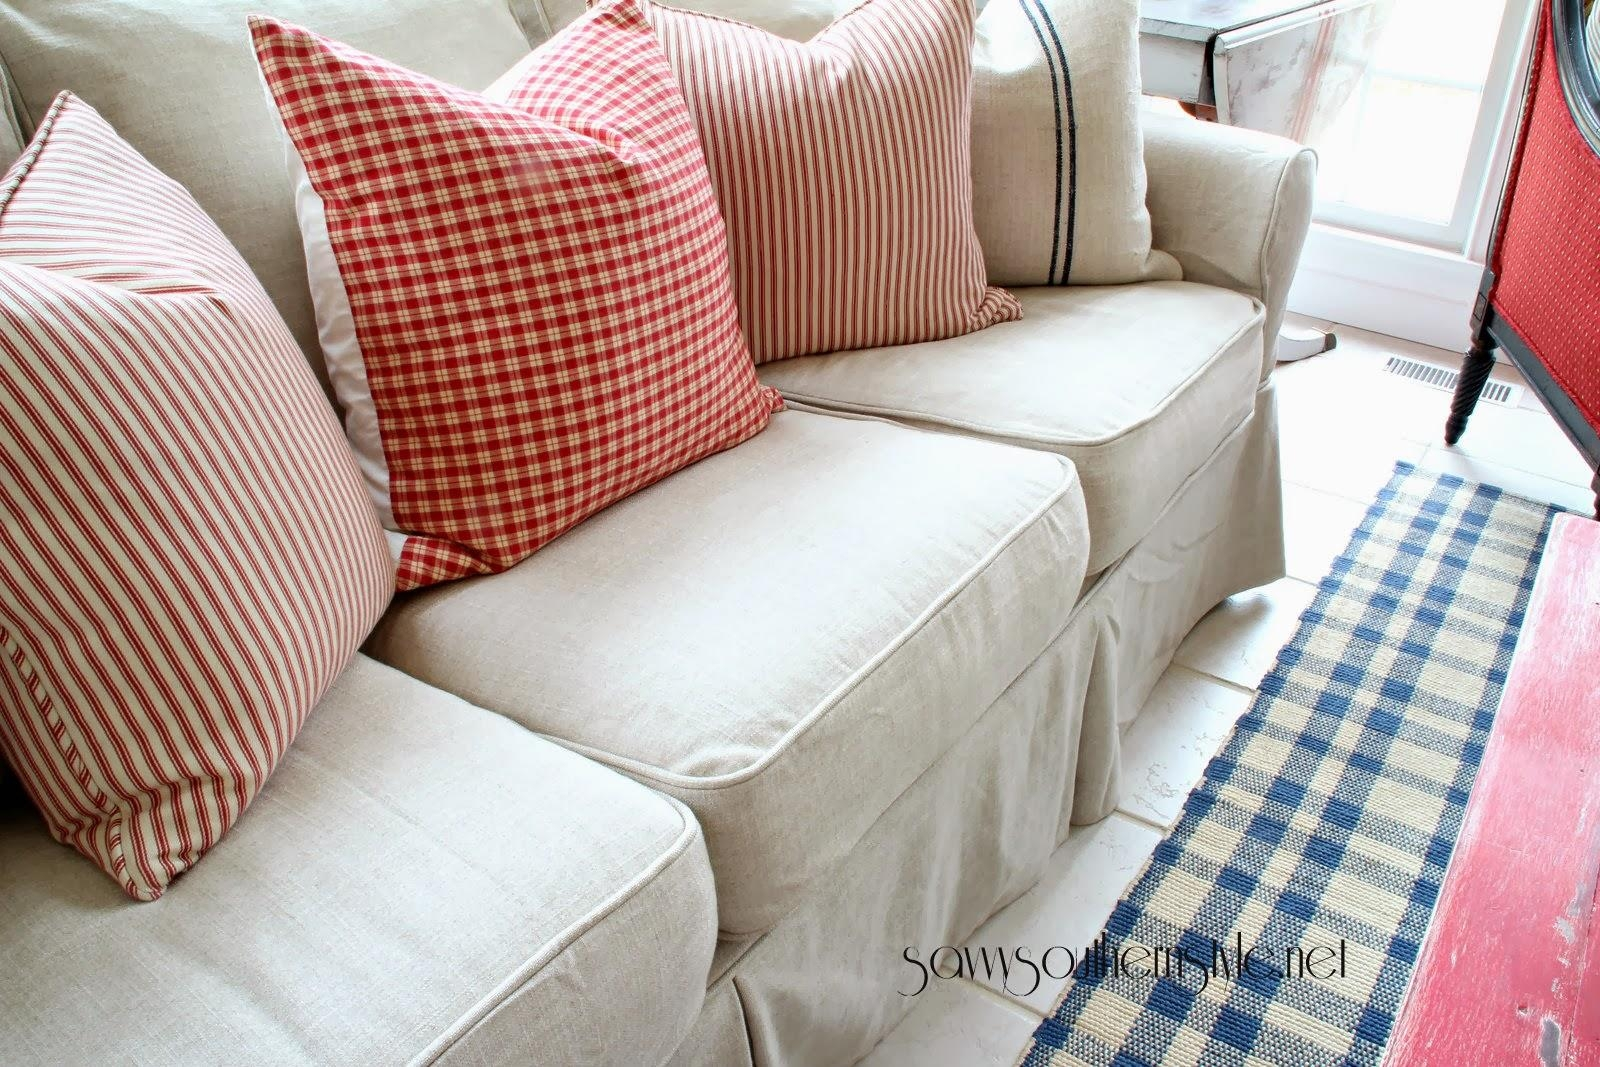 Custom Slipcovers And Couch Cover For Any Sofa Online With Canvas Sofa Slipcovers (Image 6 of 20)